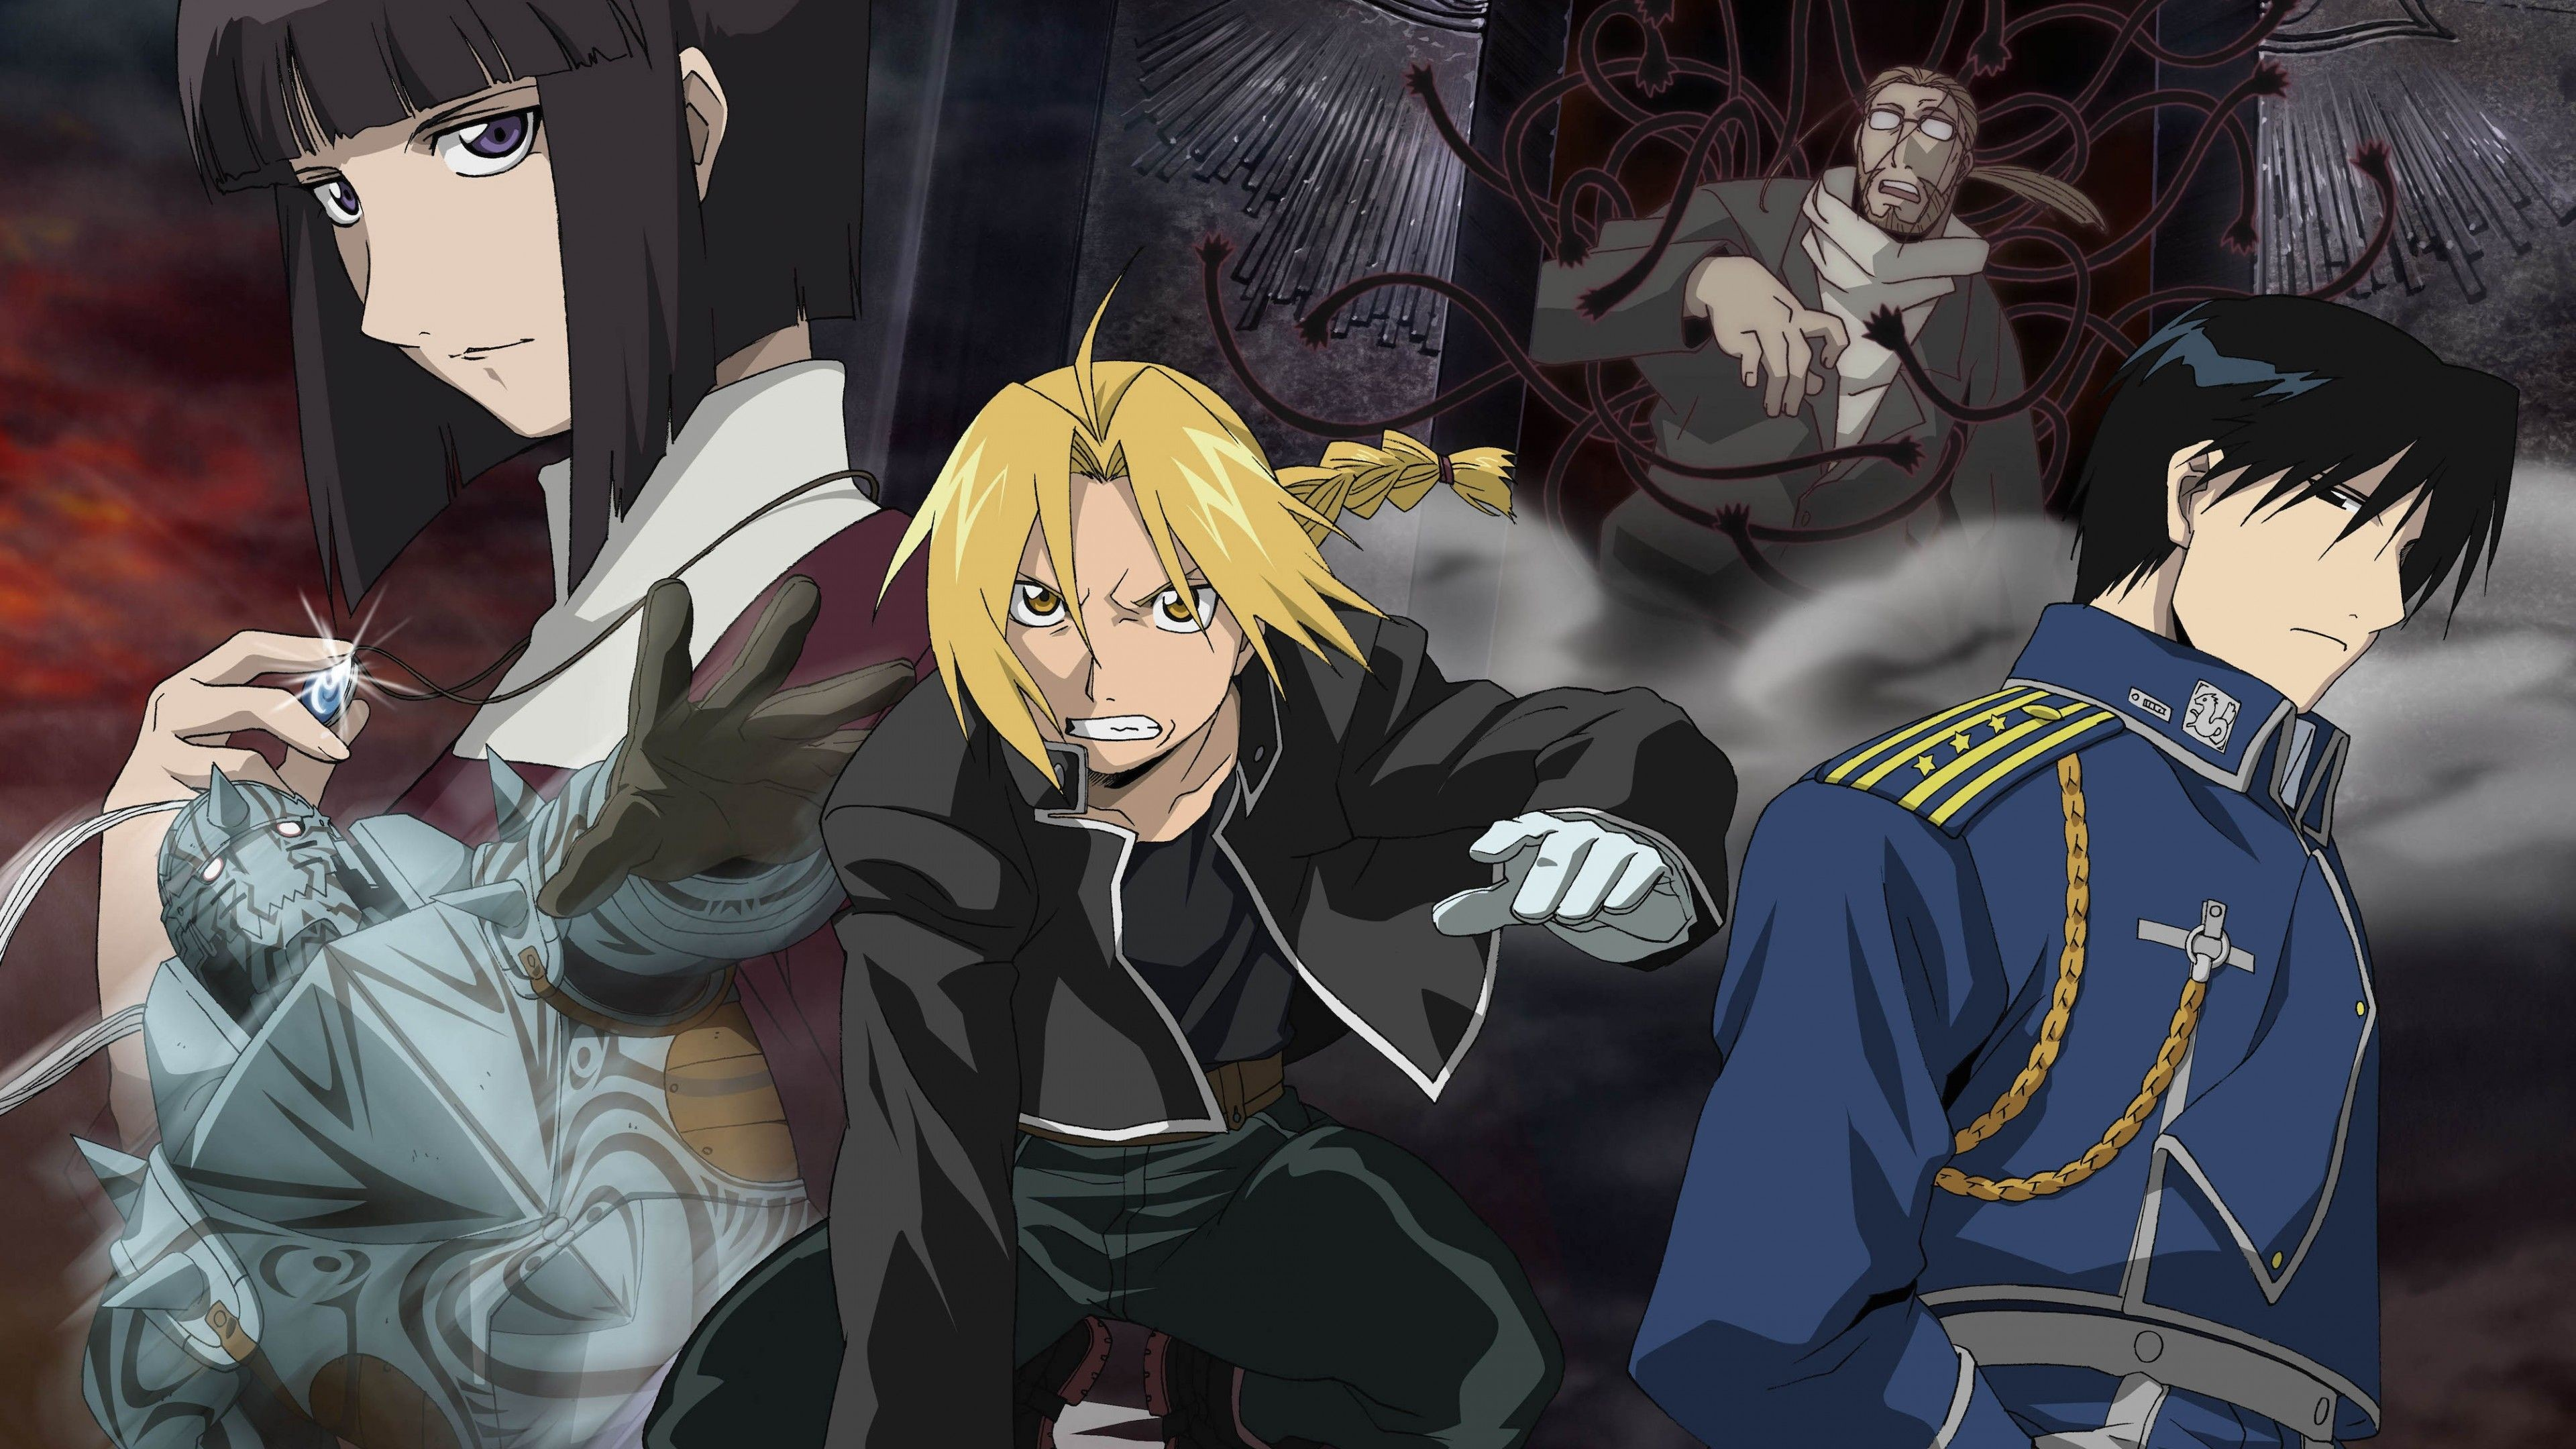 3840x2160 Fullmetal Alchemist HD wallpaper for 4K 3840 x 2160 - HDwallpapers.net Read  Full Metal Alchemist Manga Online | Discuss FMA on MangaGrounds